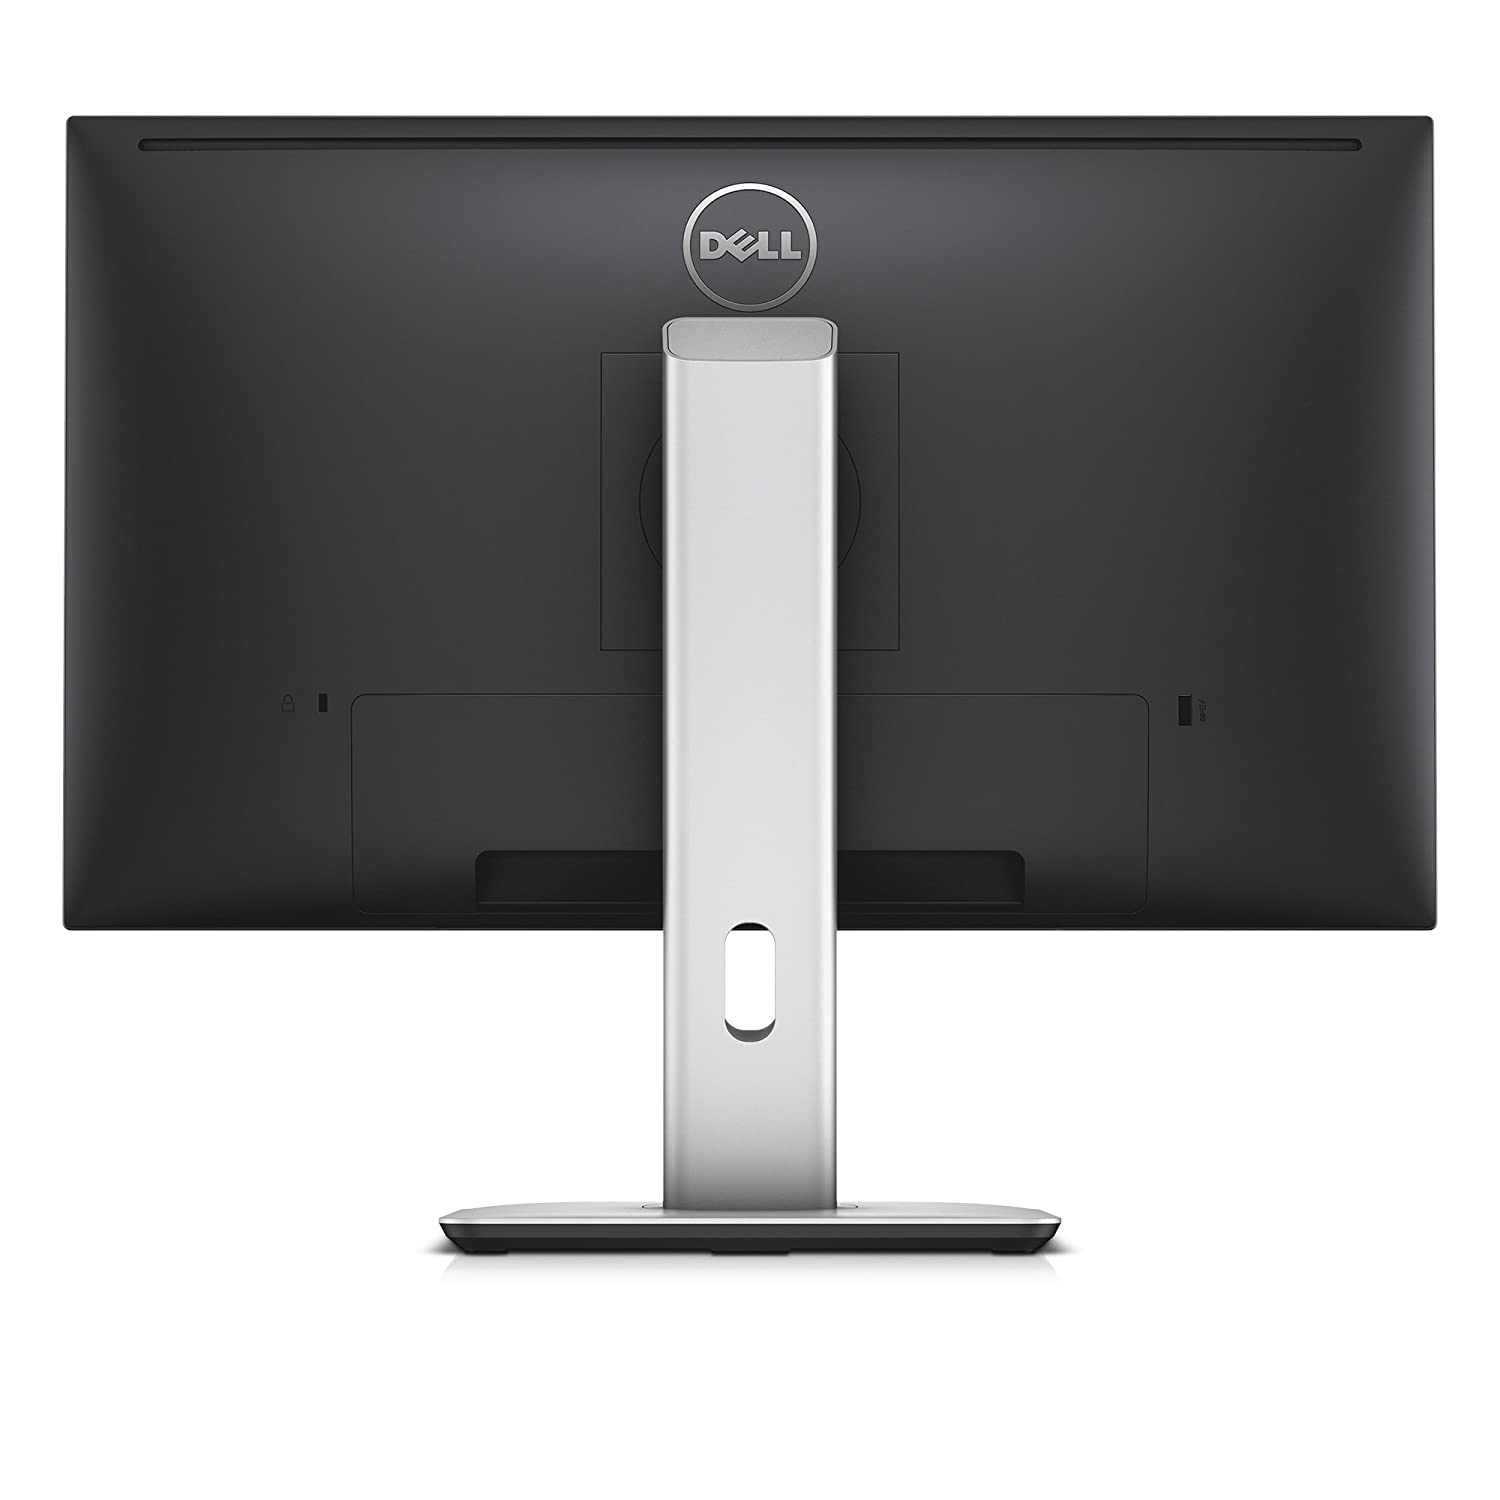 Dell UltraSharp U2515Hx Review